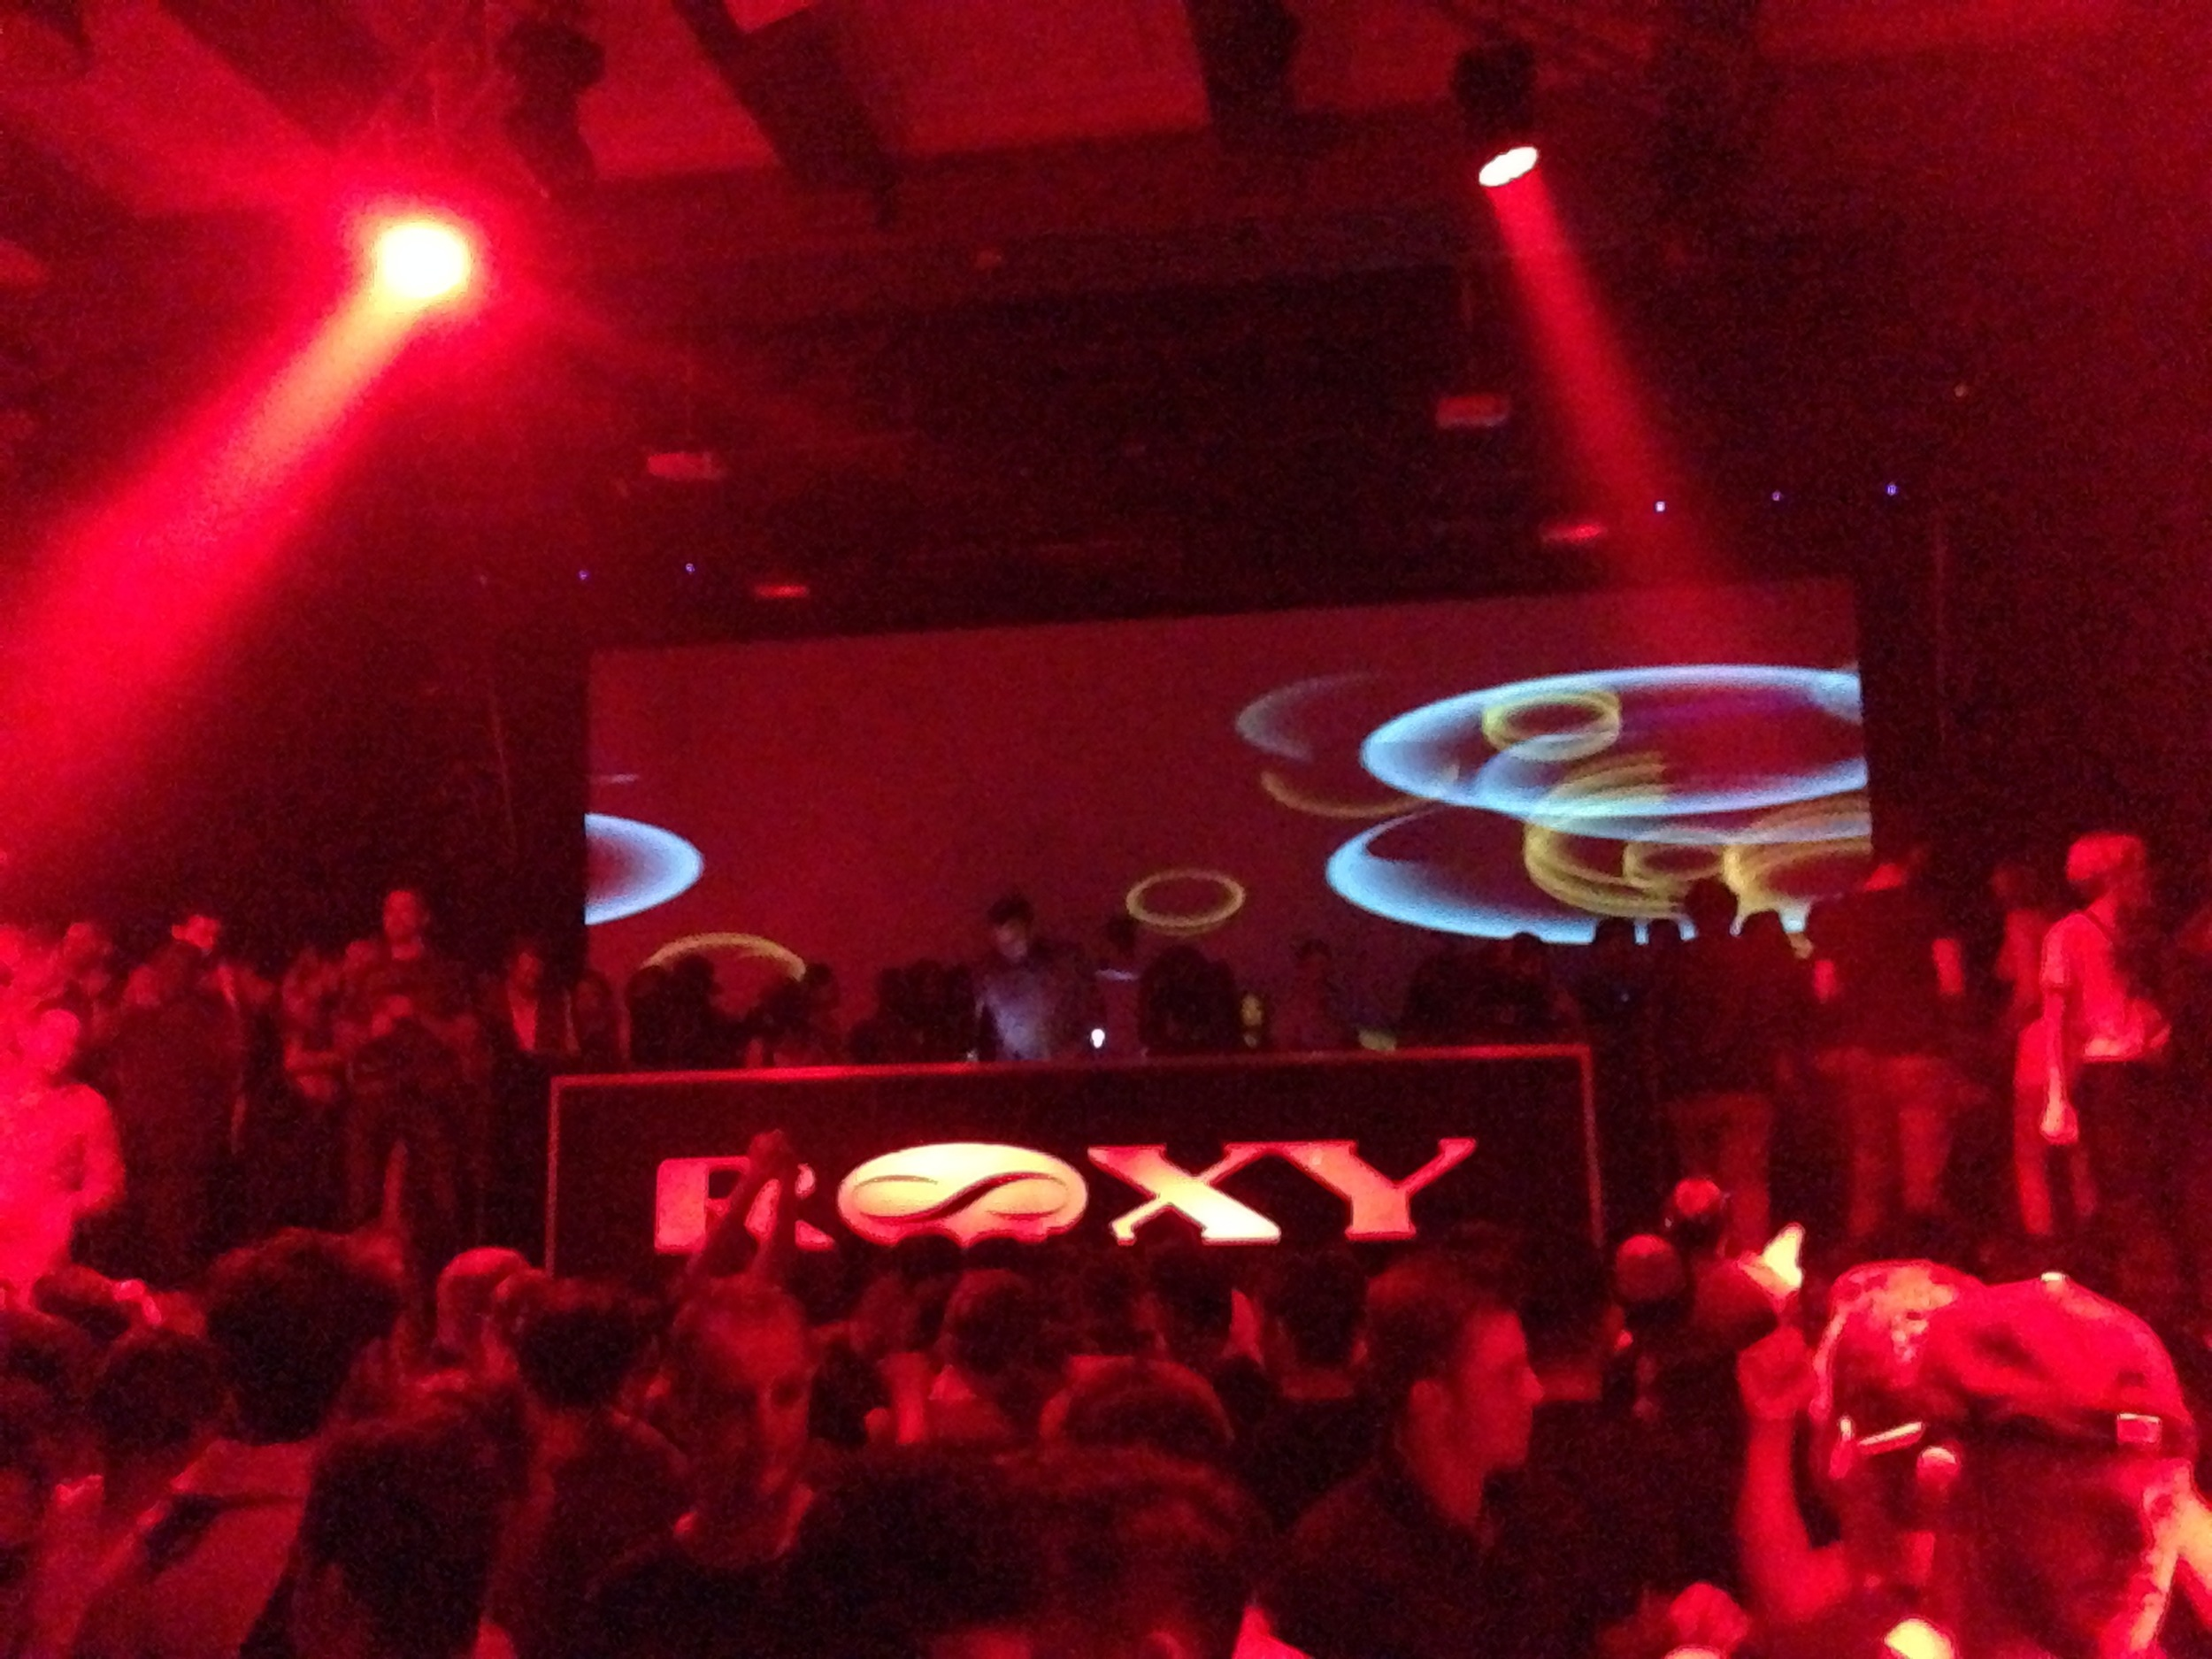 Roxy - a club that really needs no promotion. A busy venue and reasonable prices make for a good night.